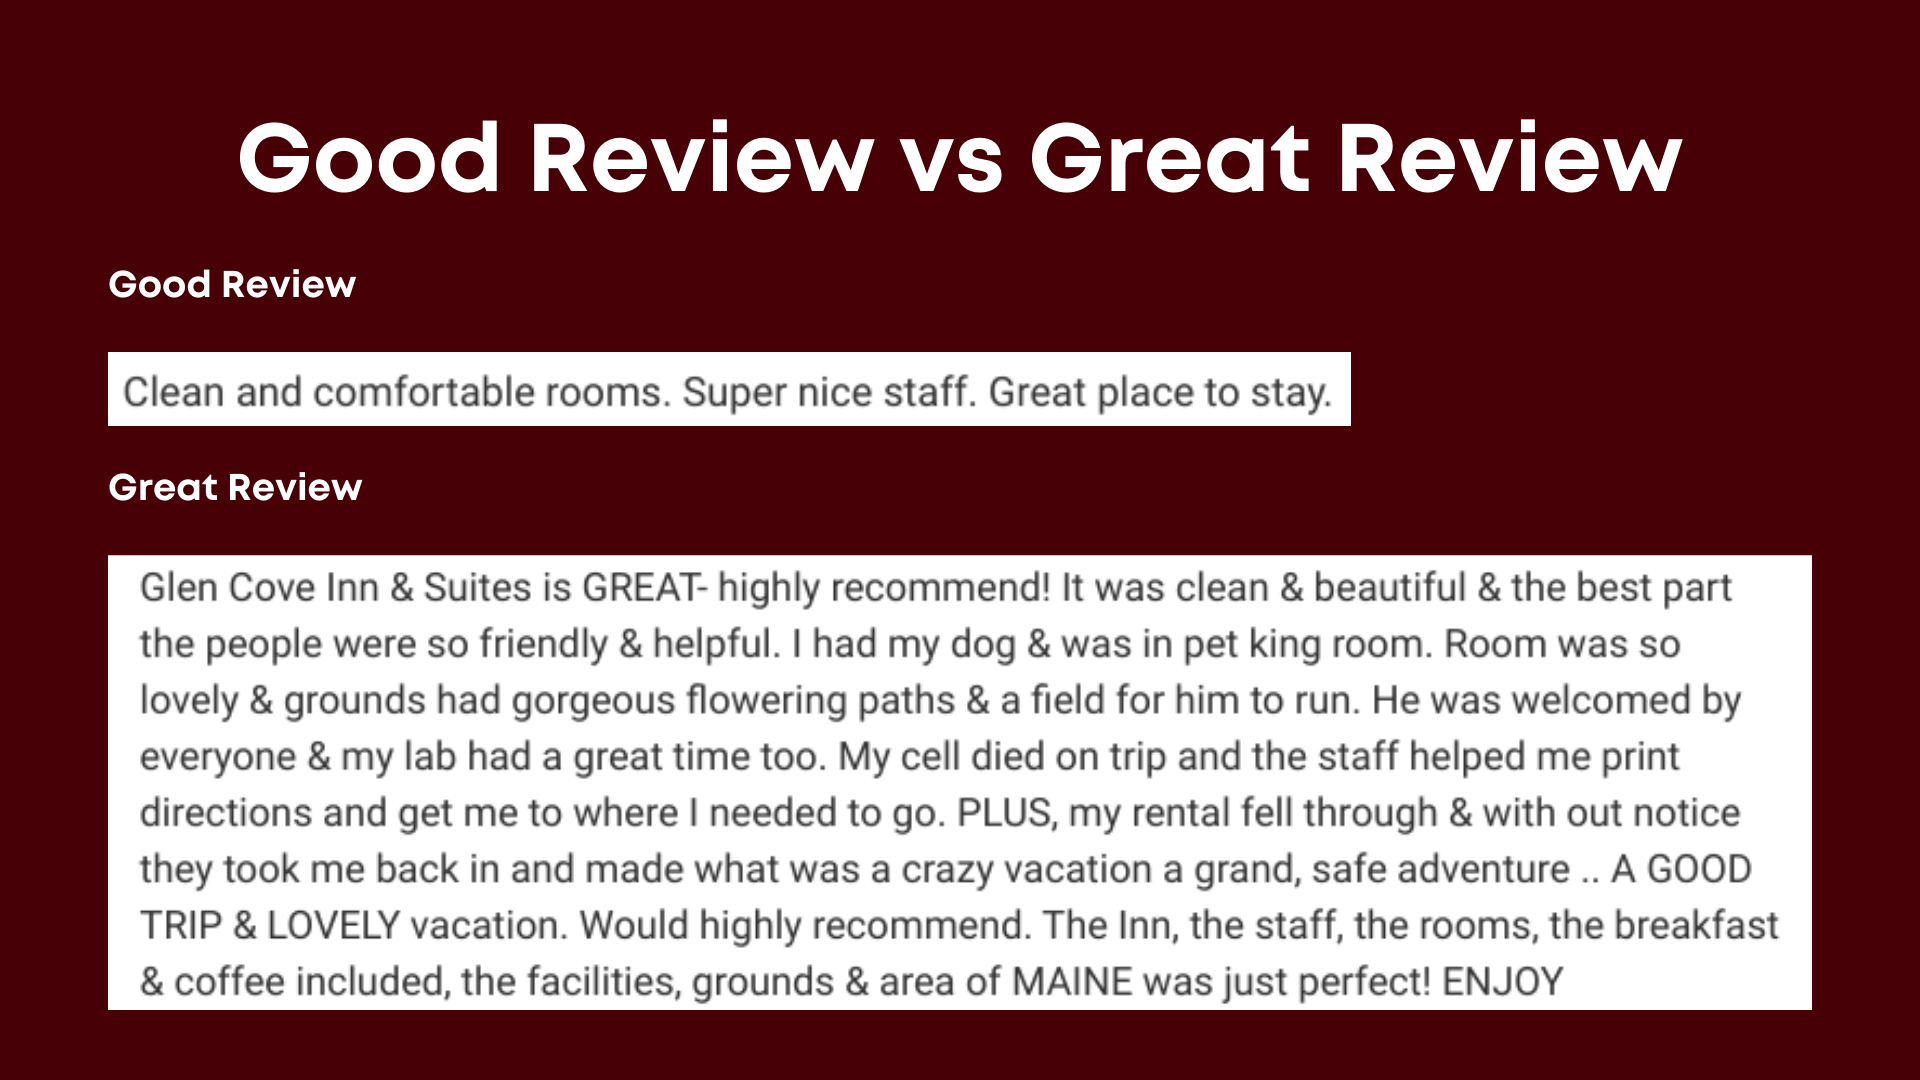 Good Review vs Great Review - Lodging Reviews Pro